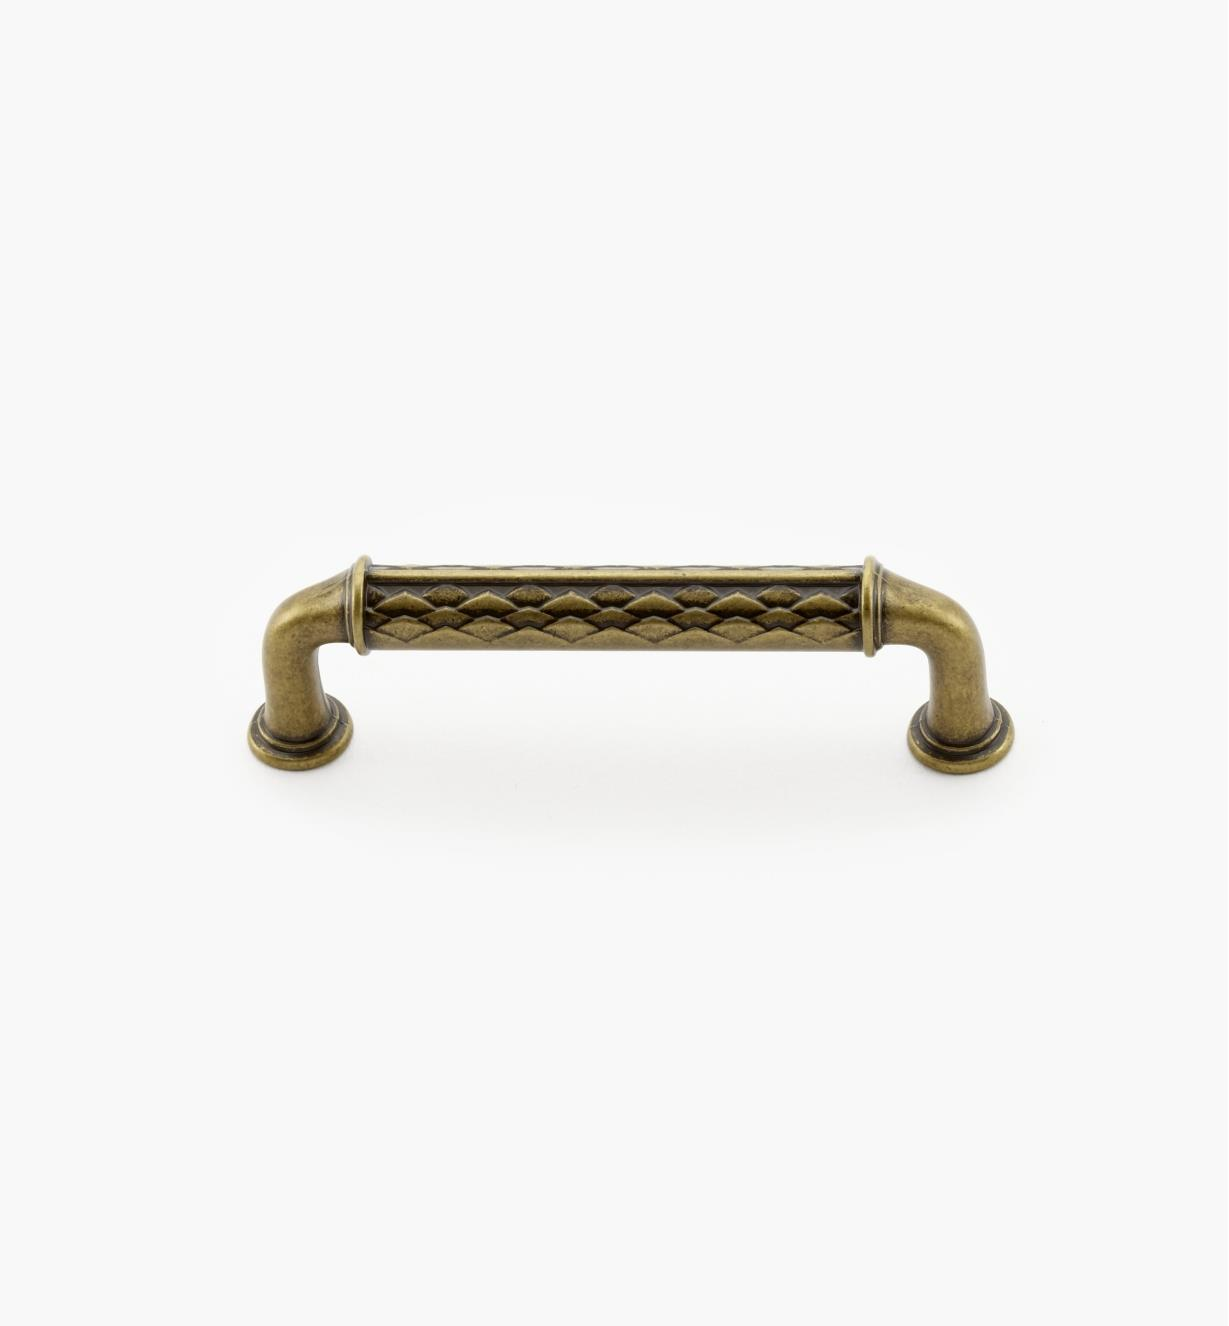 02A1241 - Antique Brass Handle